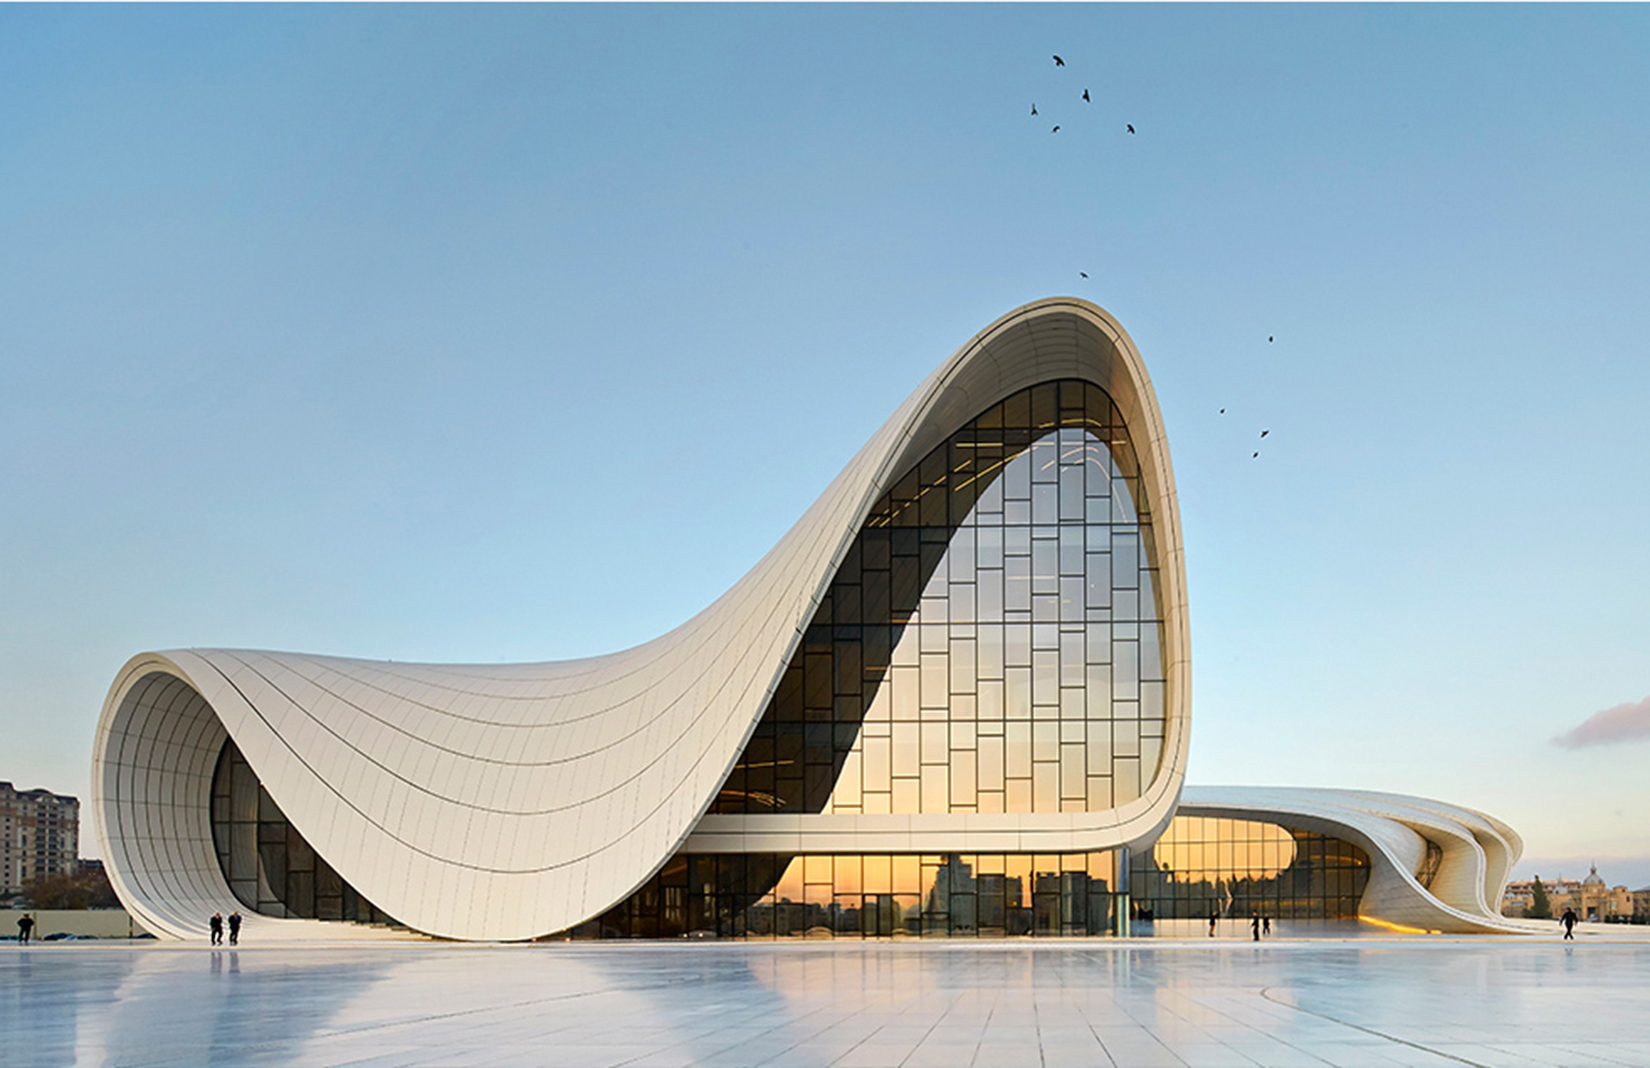 The Heydar Aliyev Center is the best building in the world